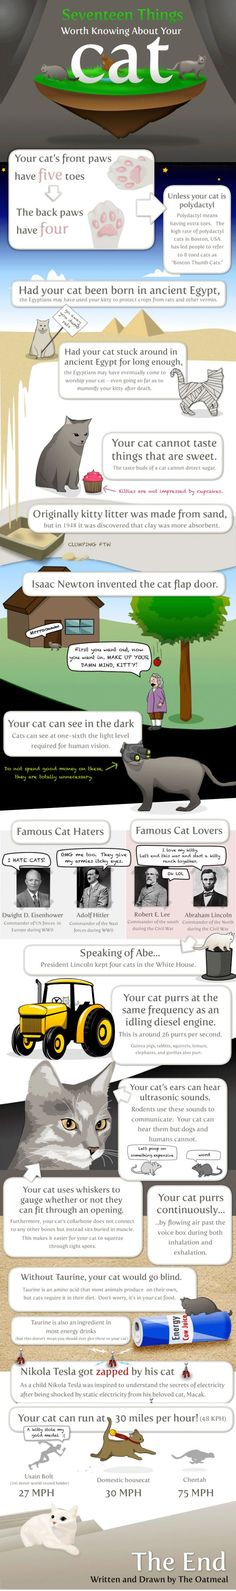 This is really funny!!!      I give it a 5 PAW rating.  Cat Wisdom 101